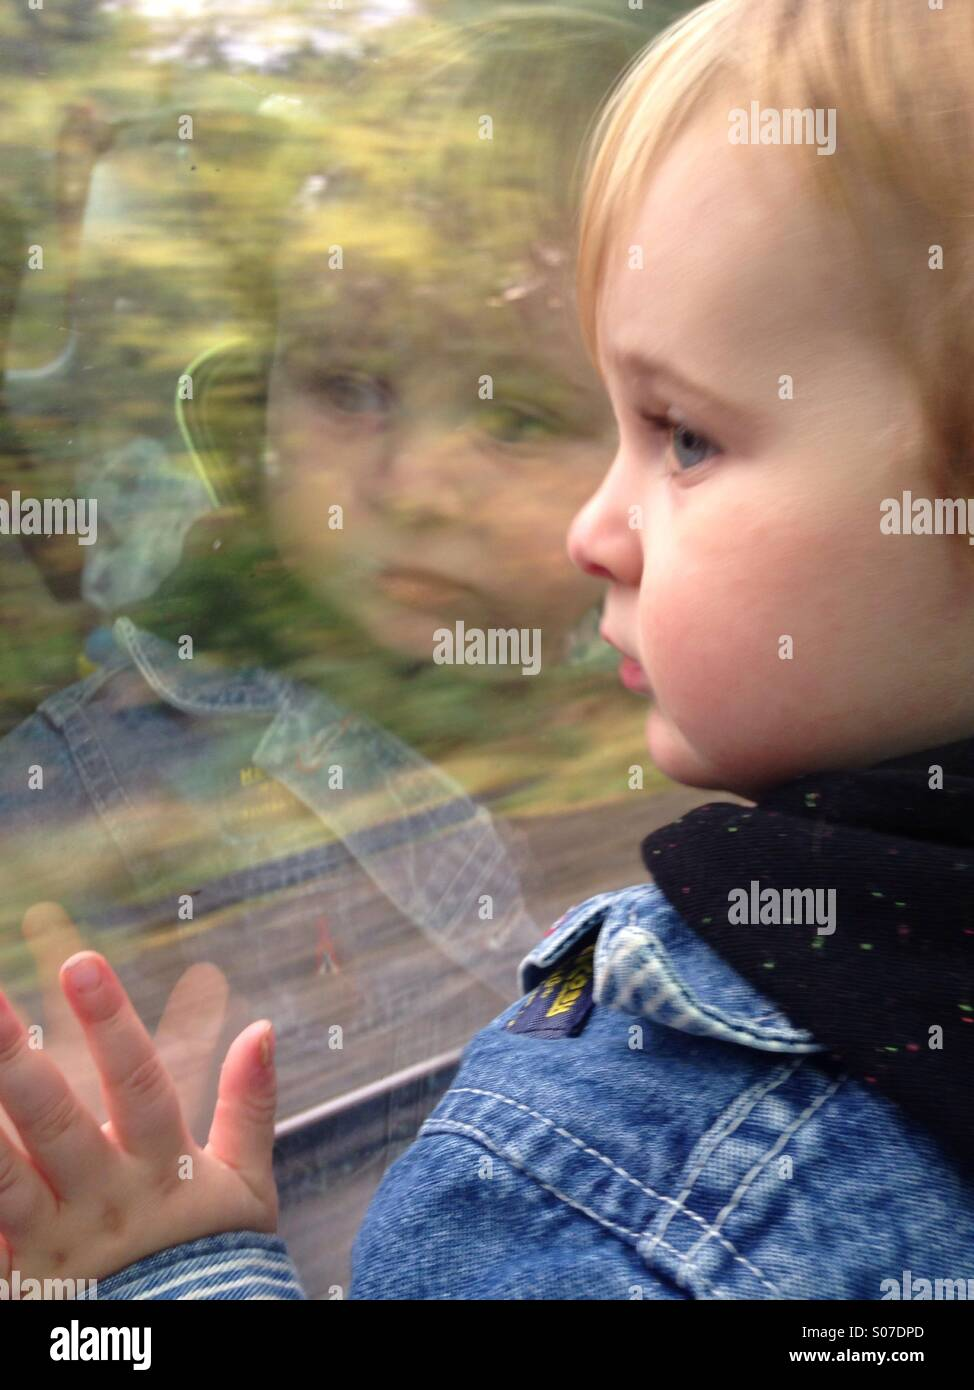 Mother amusing her toddler on a long train journey by taking selfies with her IPhone. - Stock Image